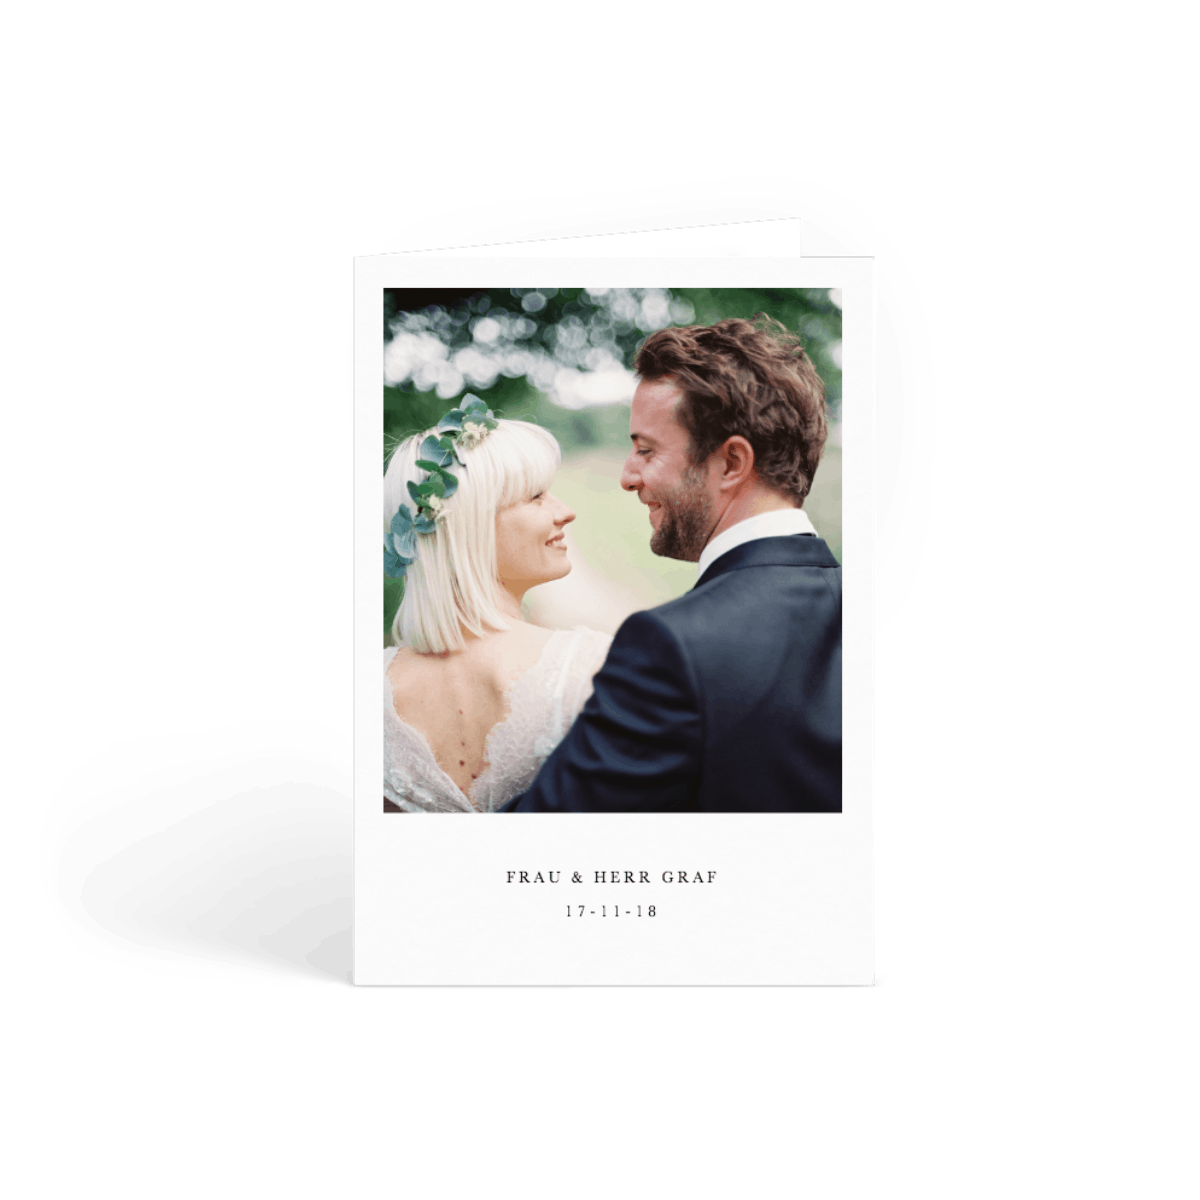 Https%3a%2f%2fwww.papier.com%2fproduct image%2f44027%2f2%2fportrait wedding photo 6625 vorderseite 1534764998.png?ixlib=rb 1.1